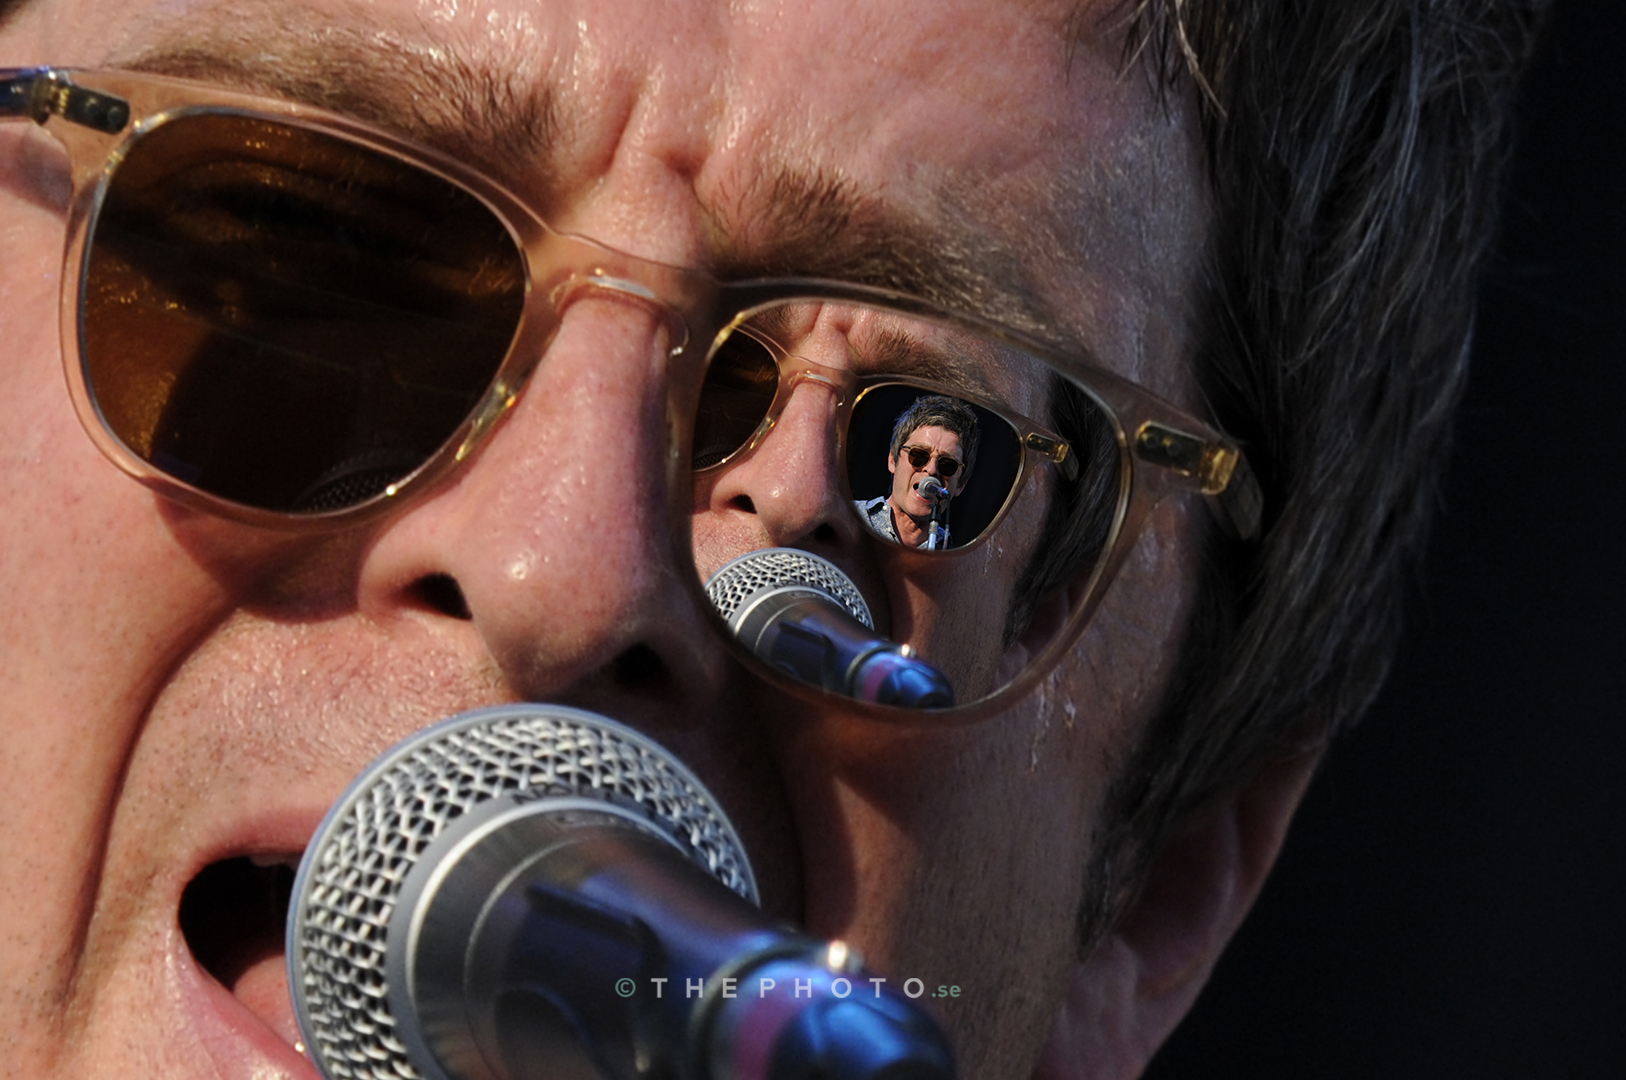 Slip inside the eye of your mind. Noel Gallagher on Don't Look Back in Anger.